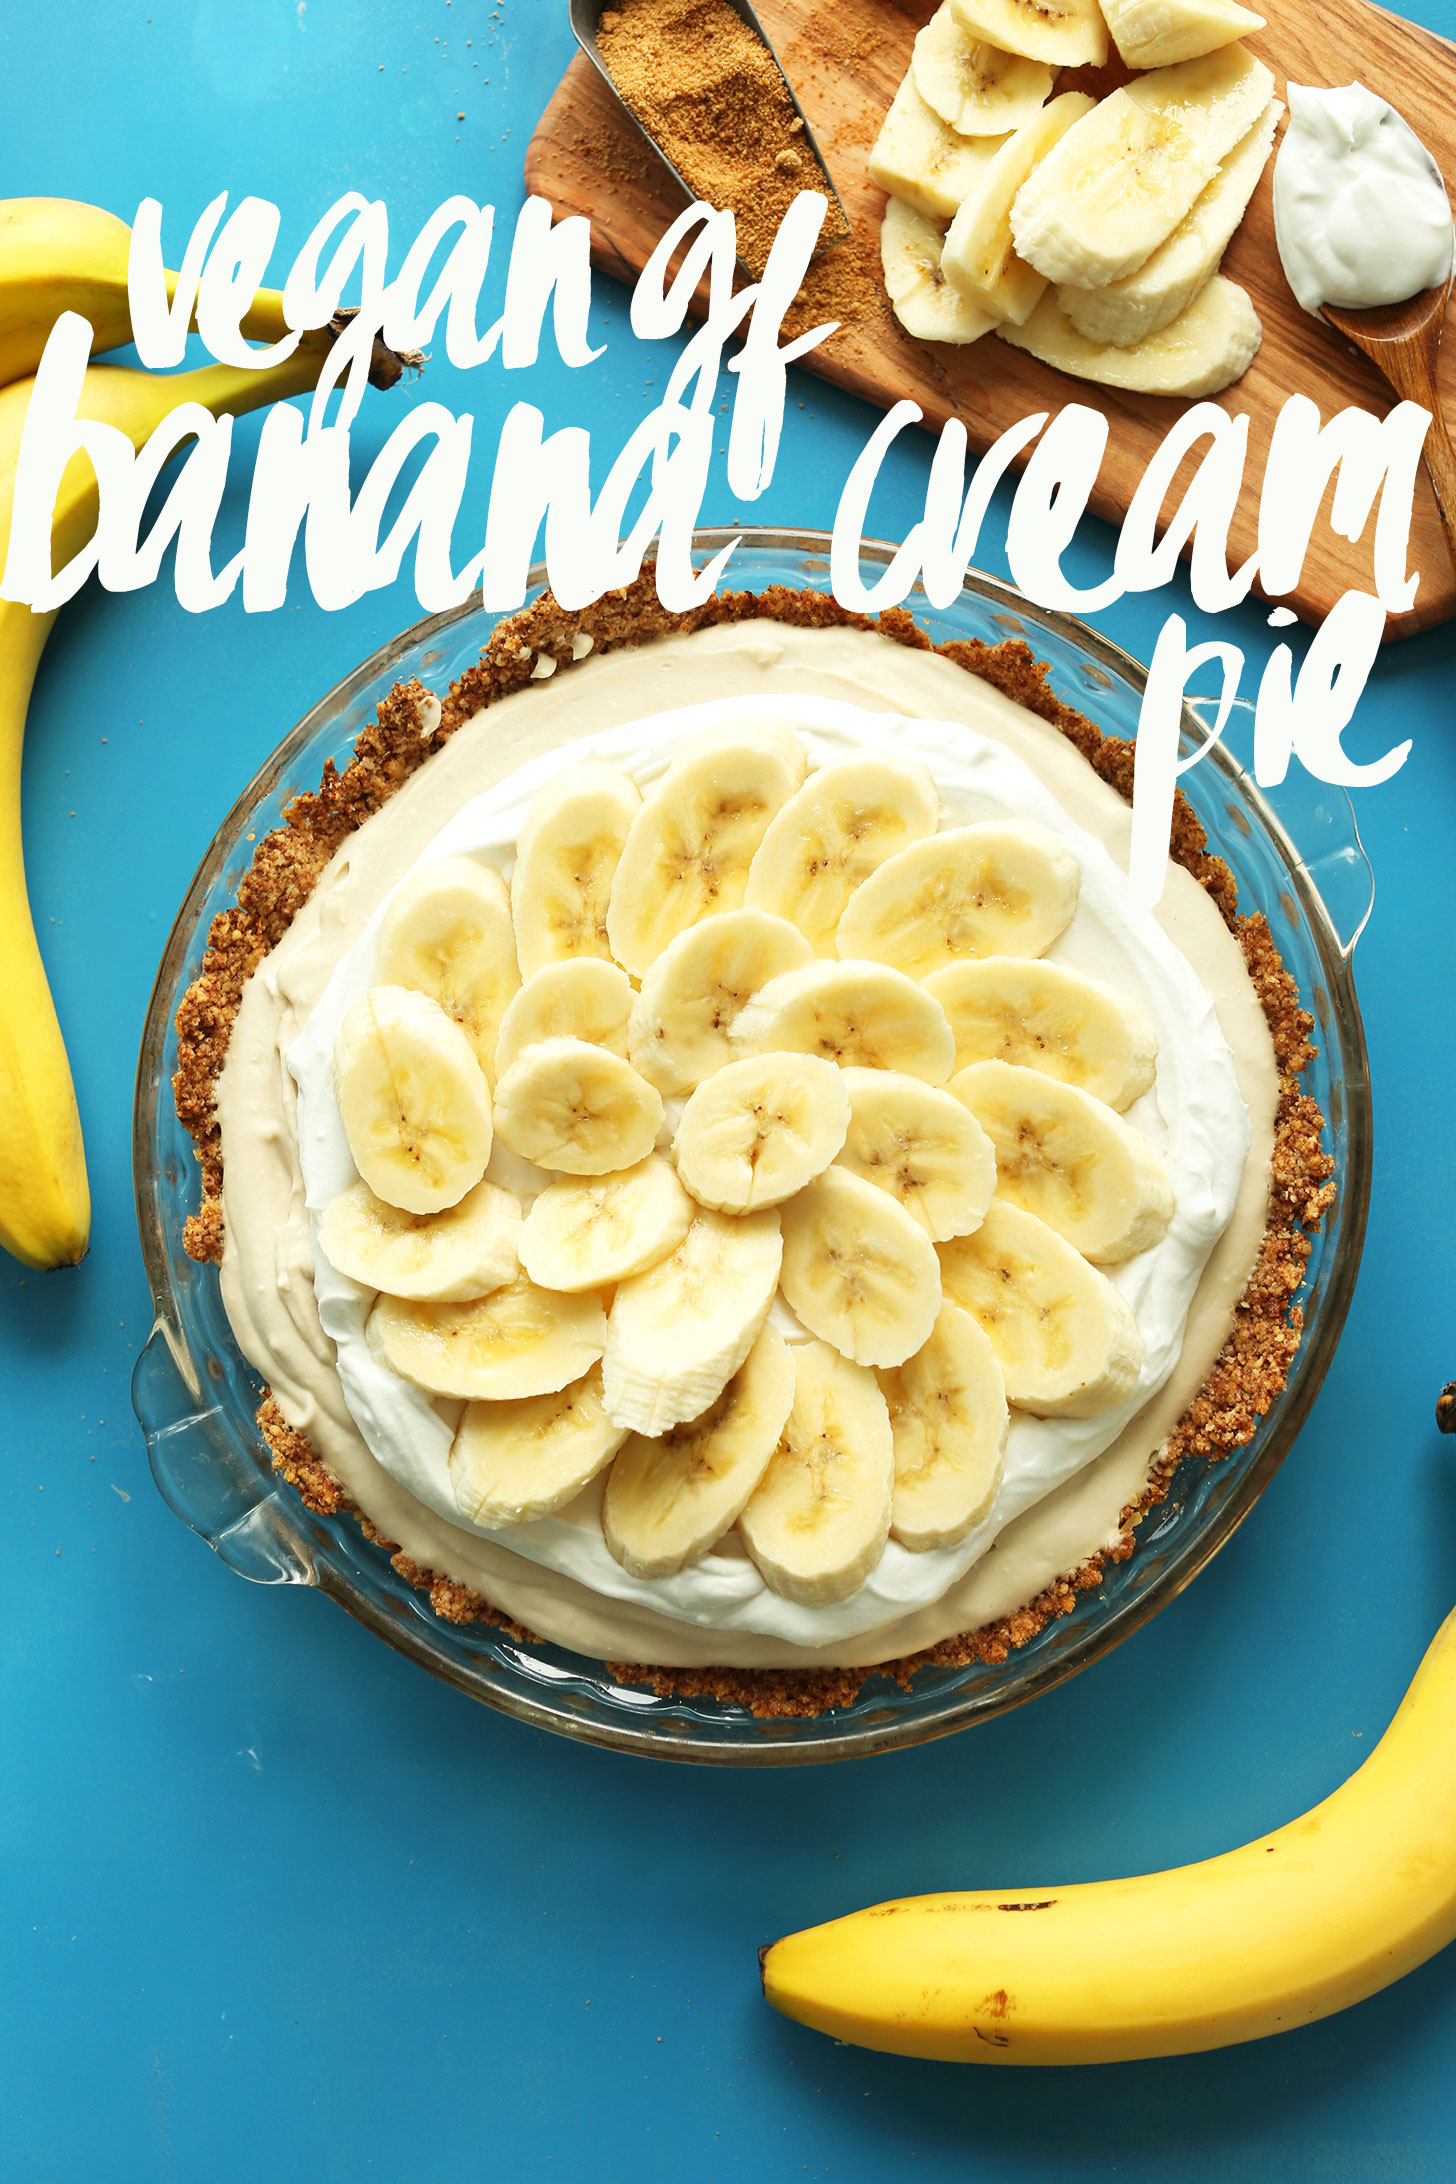 A whole dish full of our amazing gluten-free vegan Banana Cream Pie